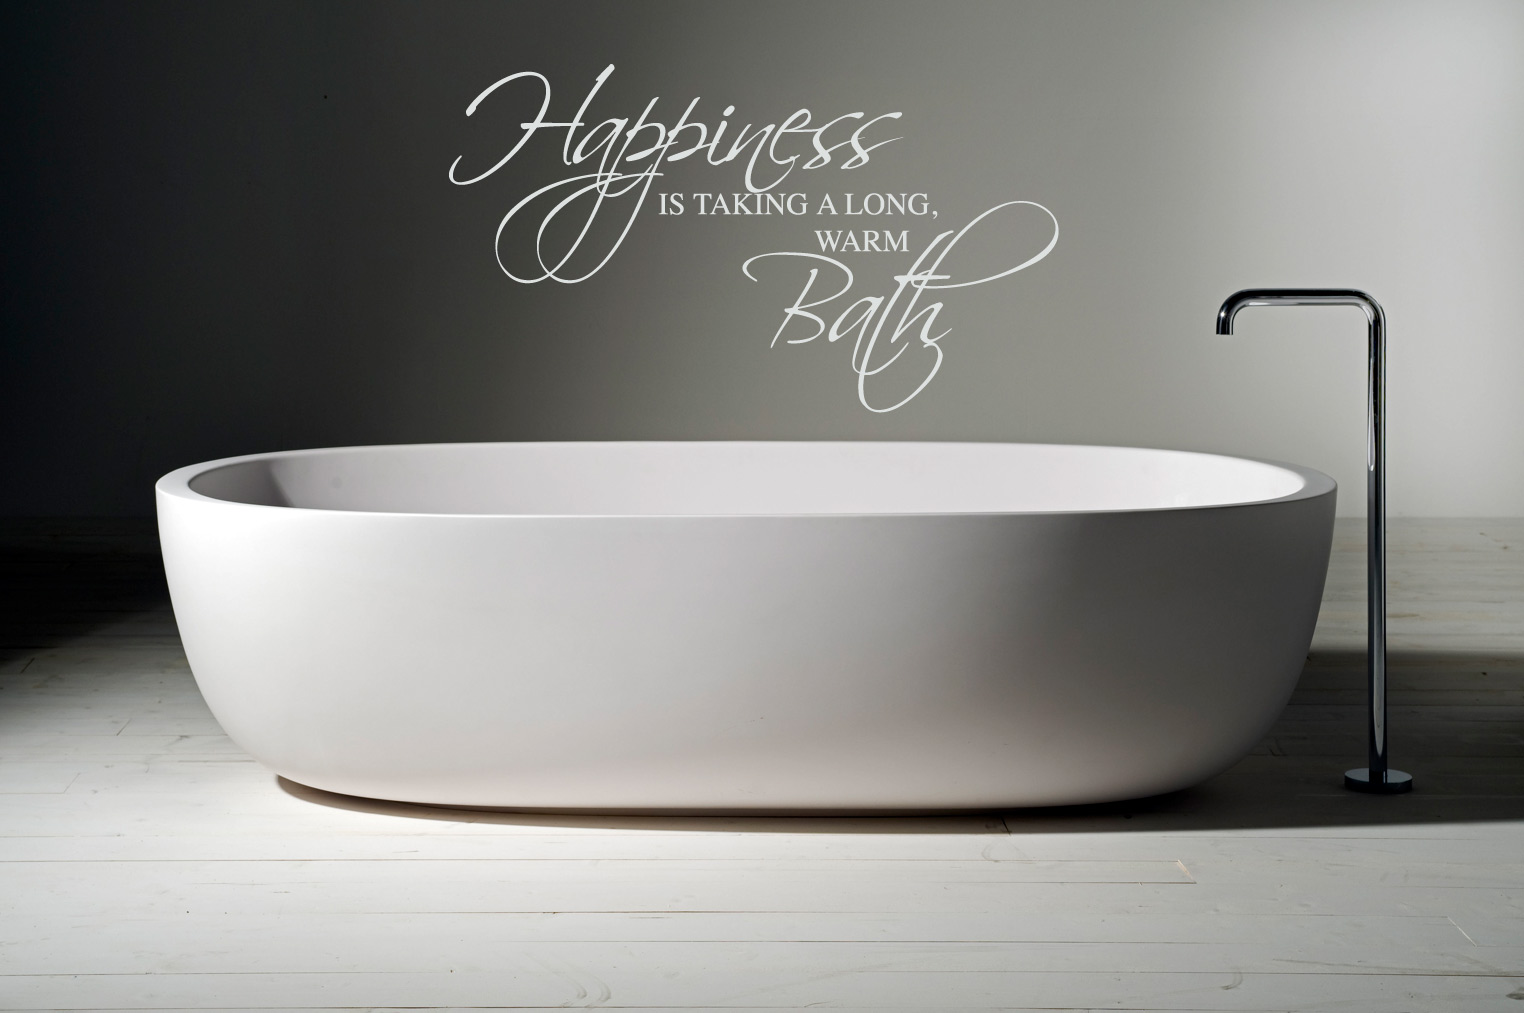 Bath Quotes Famous Quotes About 'bath'  Sualci Quotes